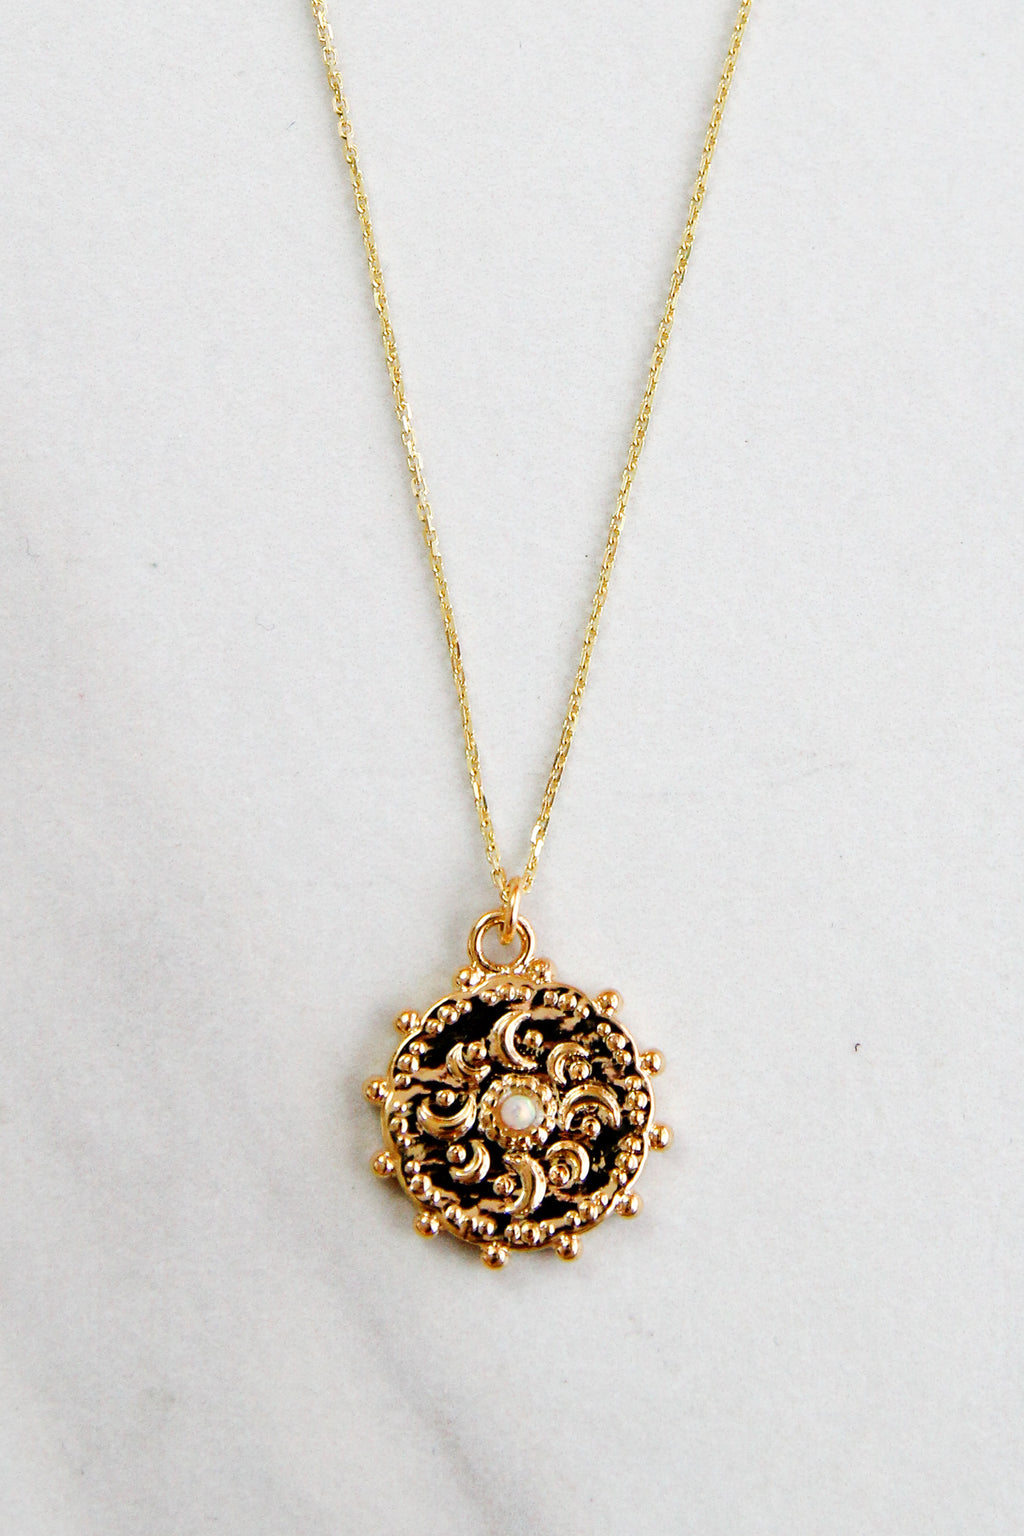 Dainty Gold Coin Necklace